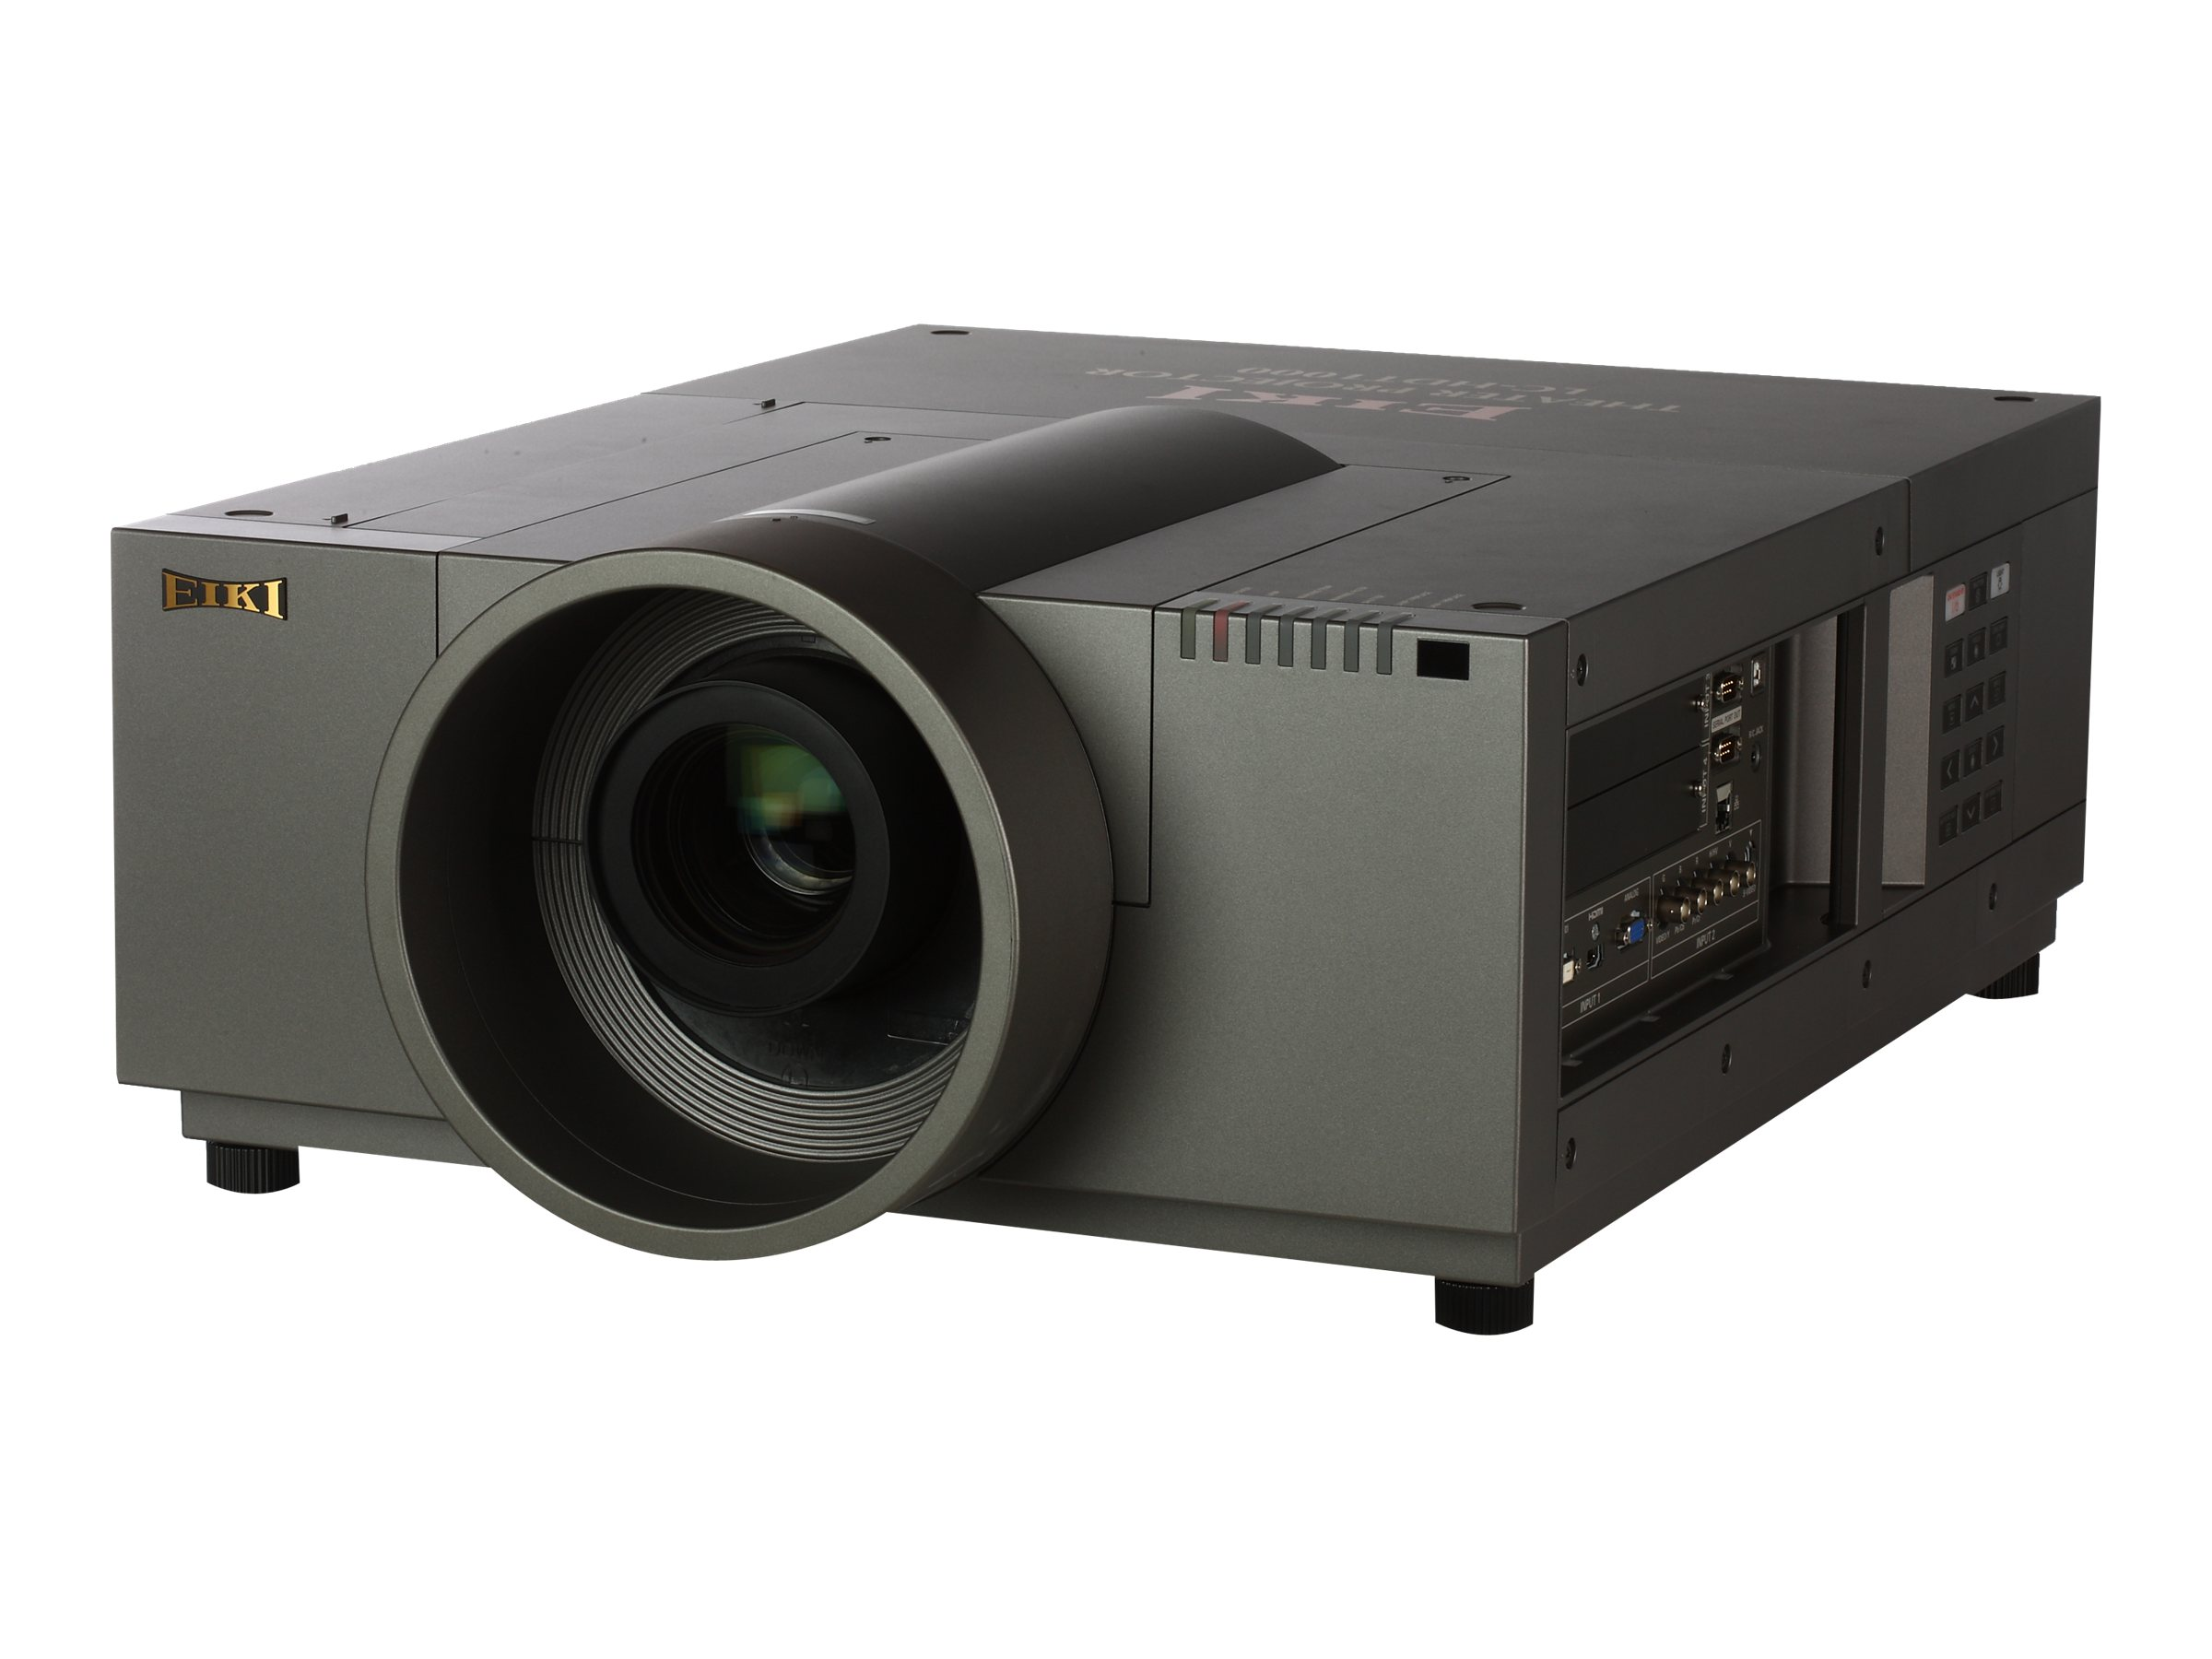 Eiki LC-HDT1000 3LCD+One Full HD WUXGA Projector, 10,000 Lumens, Lens Not Included, LC-HDT1000, 15795598, Projectors